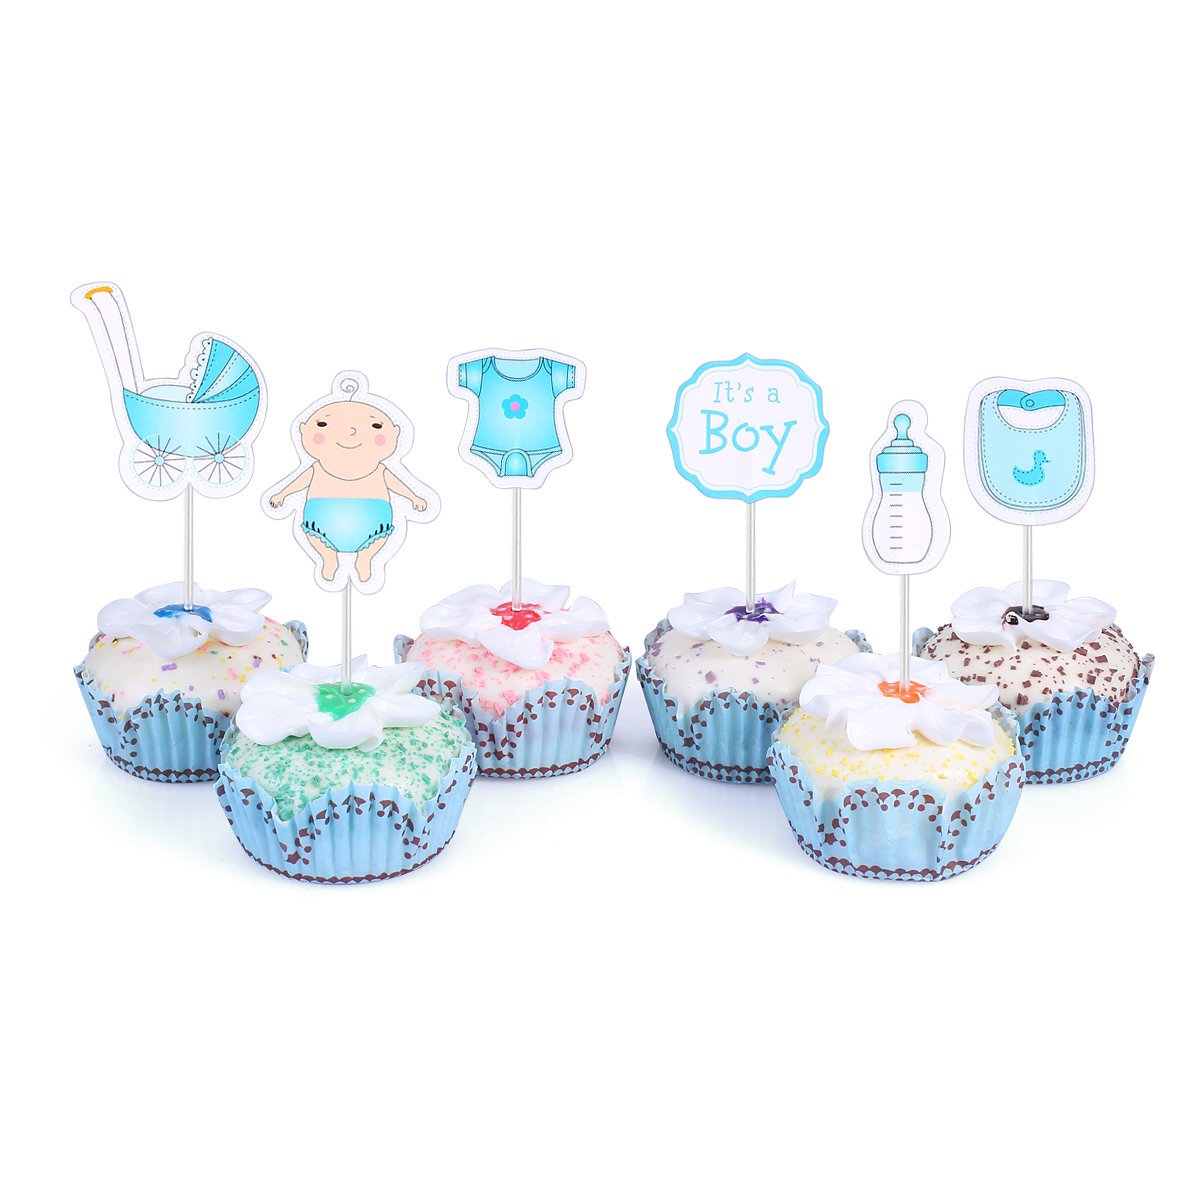 Amazon.com: 48 Cupcake Toppers for Baby Shower It's a Boy Kids Party Cake  Decorations Blue: Kitchen & Dining